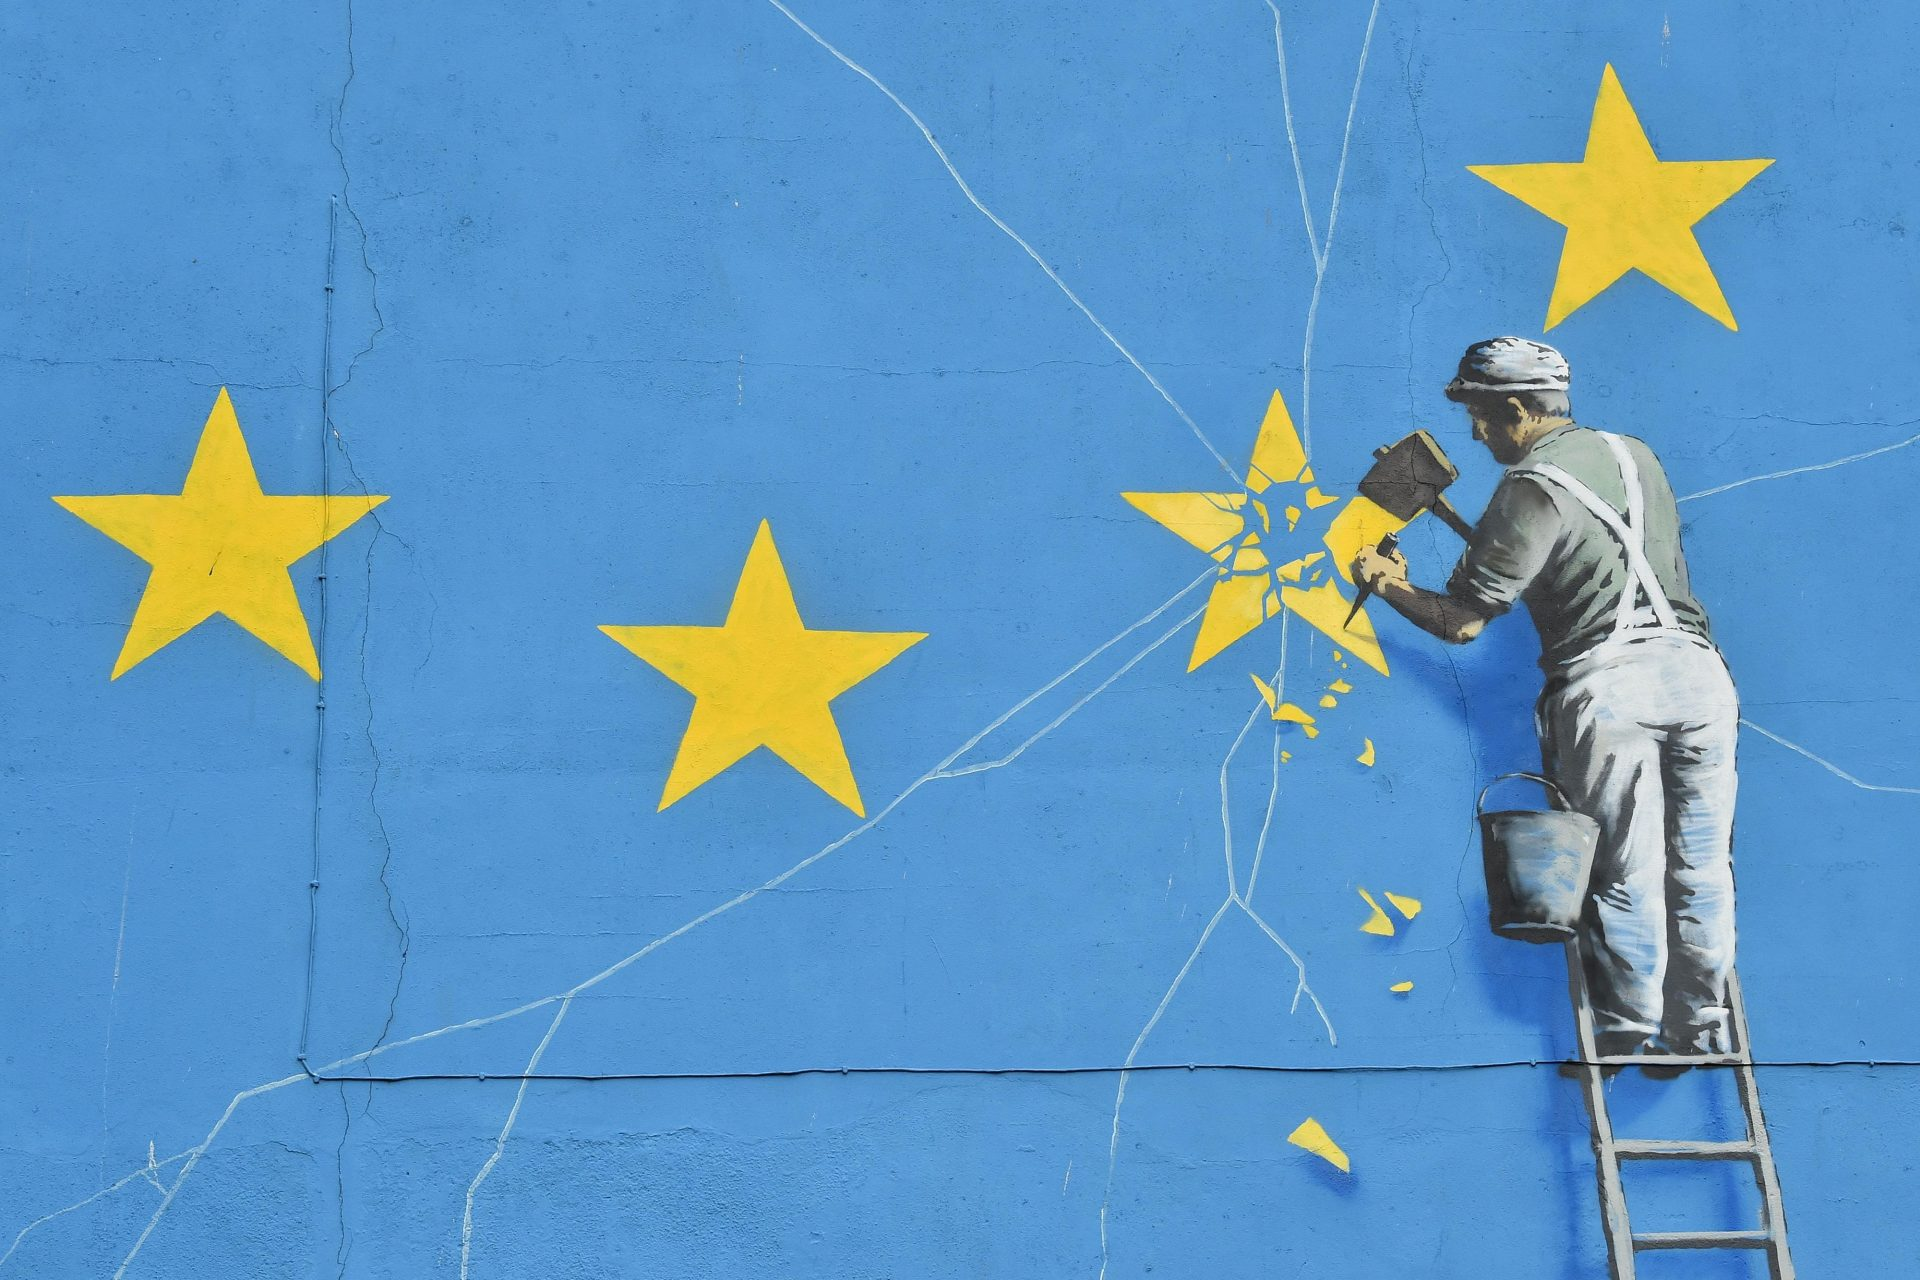 A 2017 mural by Banksy in Dover, depicting a workman chipping away at one of the stars on the European flag. Photo: Glyn Kirk/Getty Images.